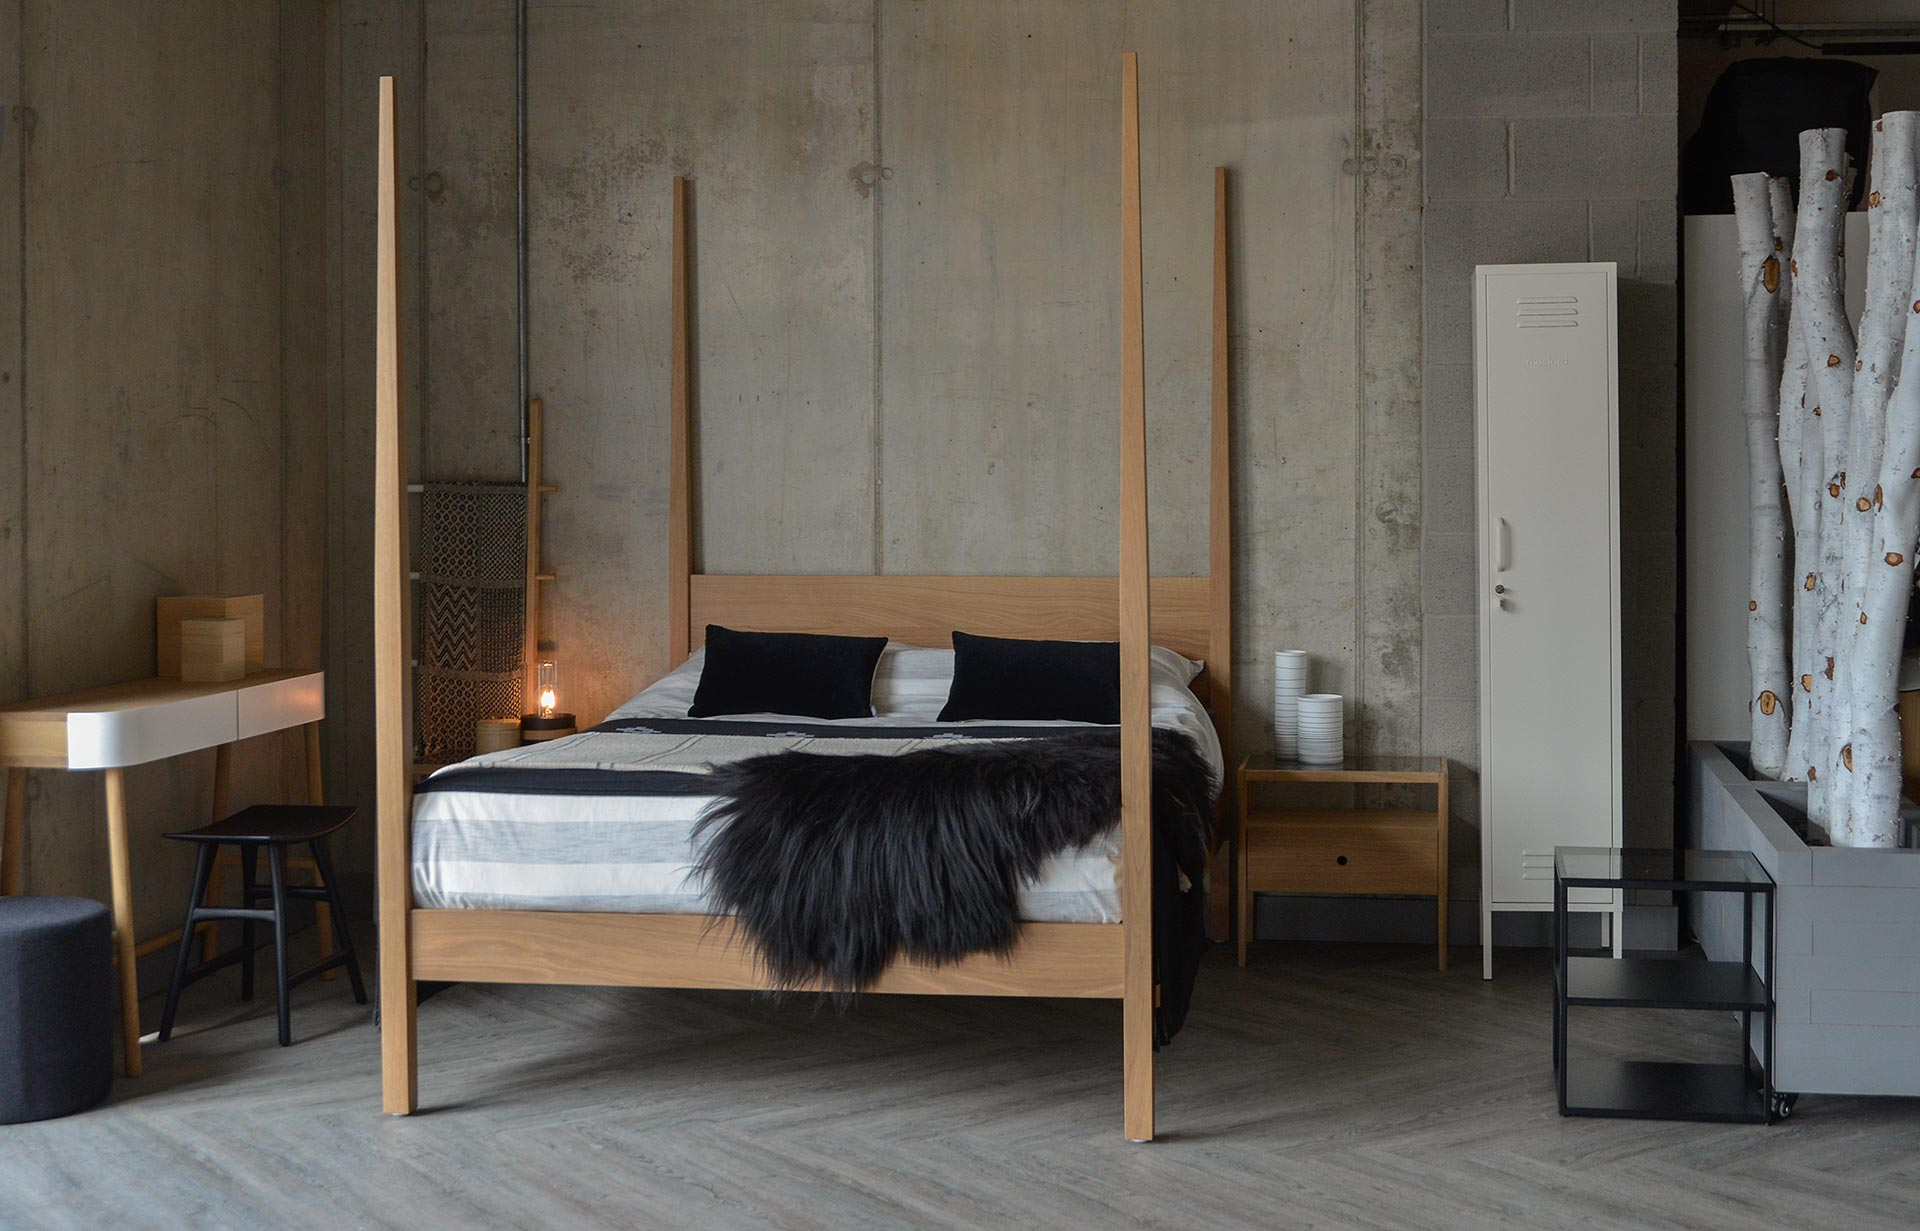 A striking bedroom centrepiece our handmade solid wood Hatfield 4 post bed